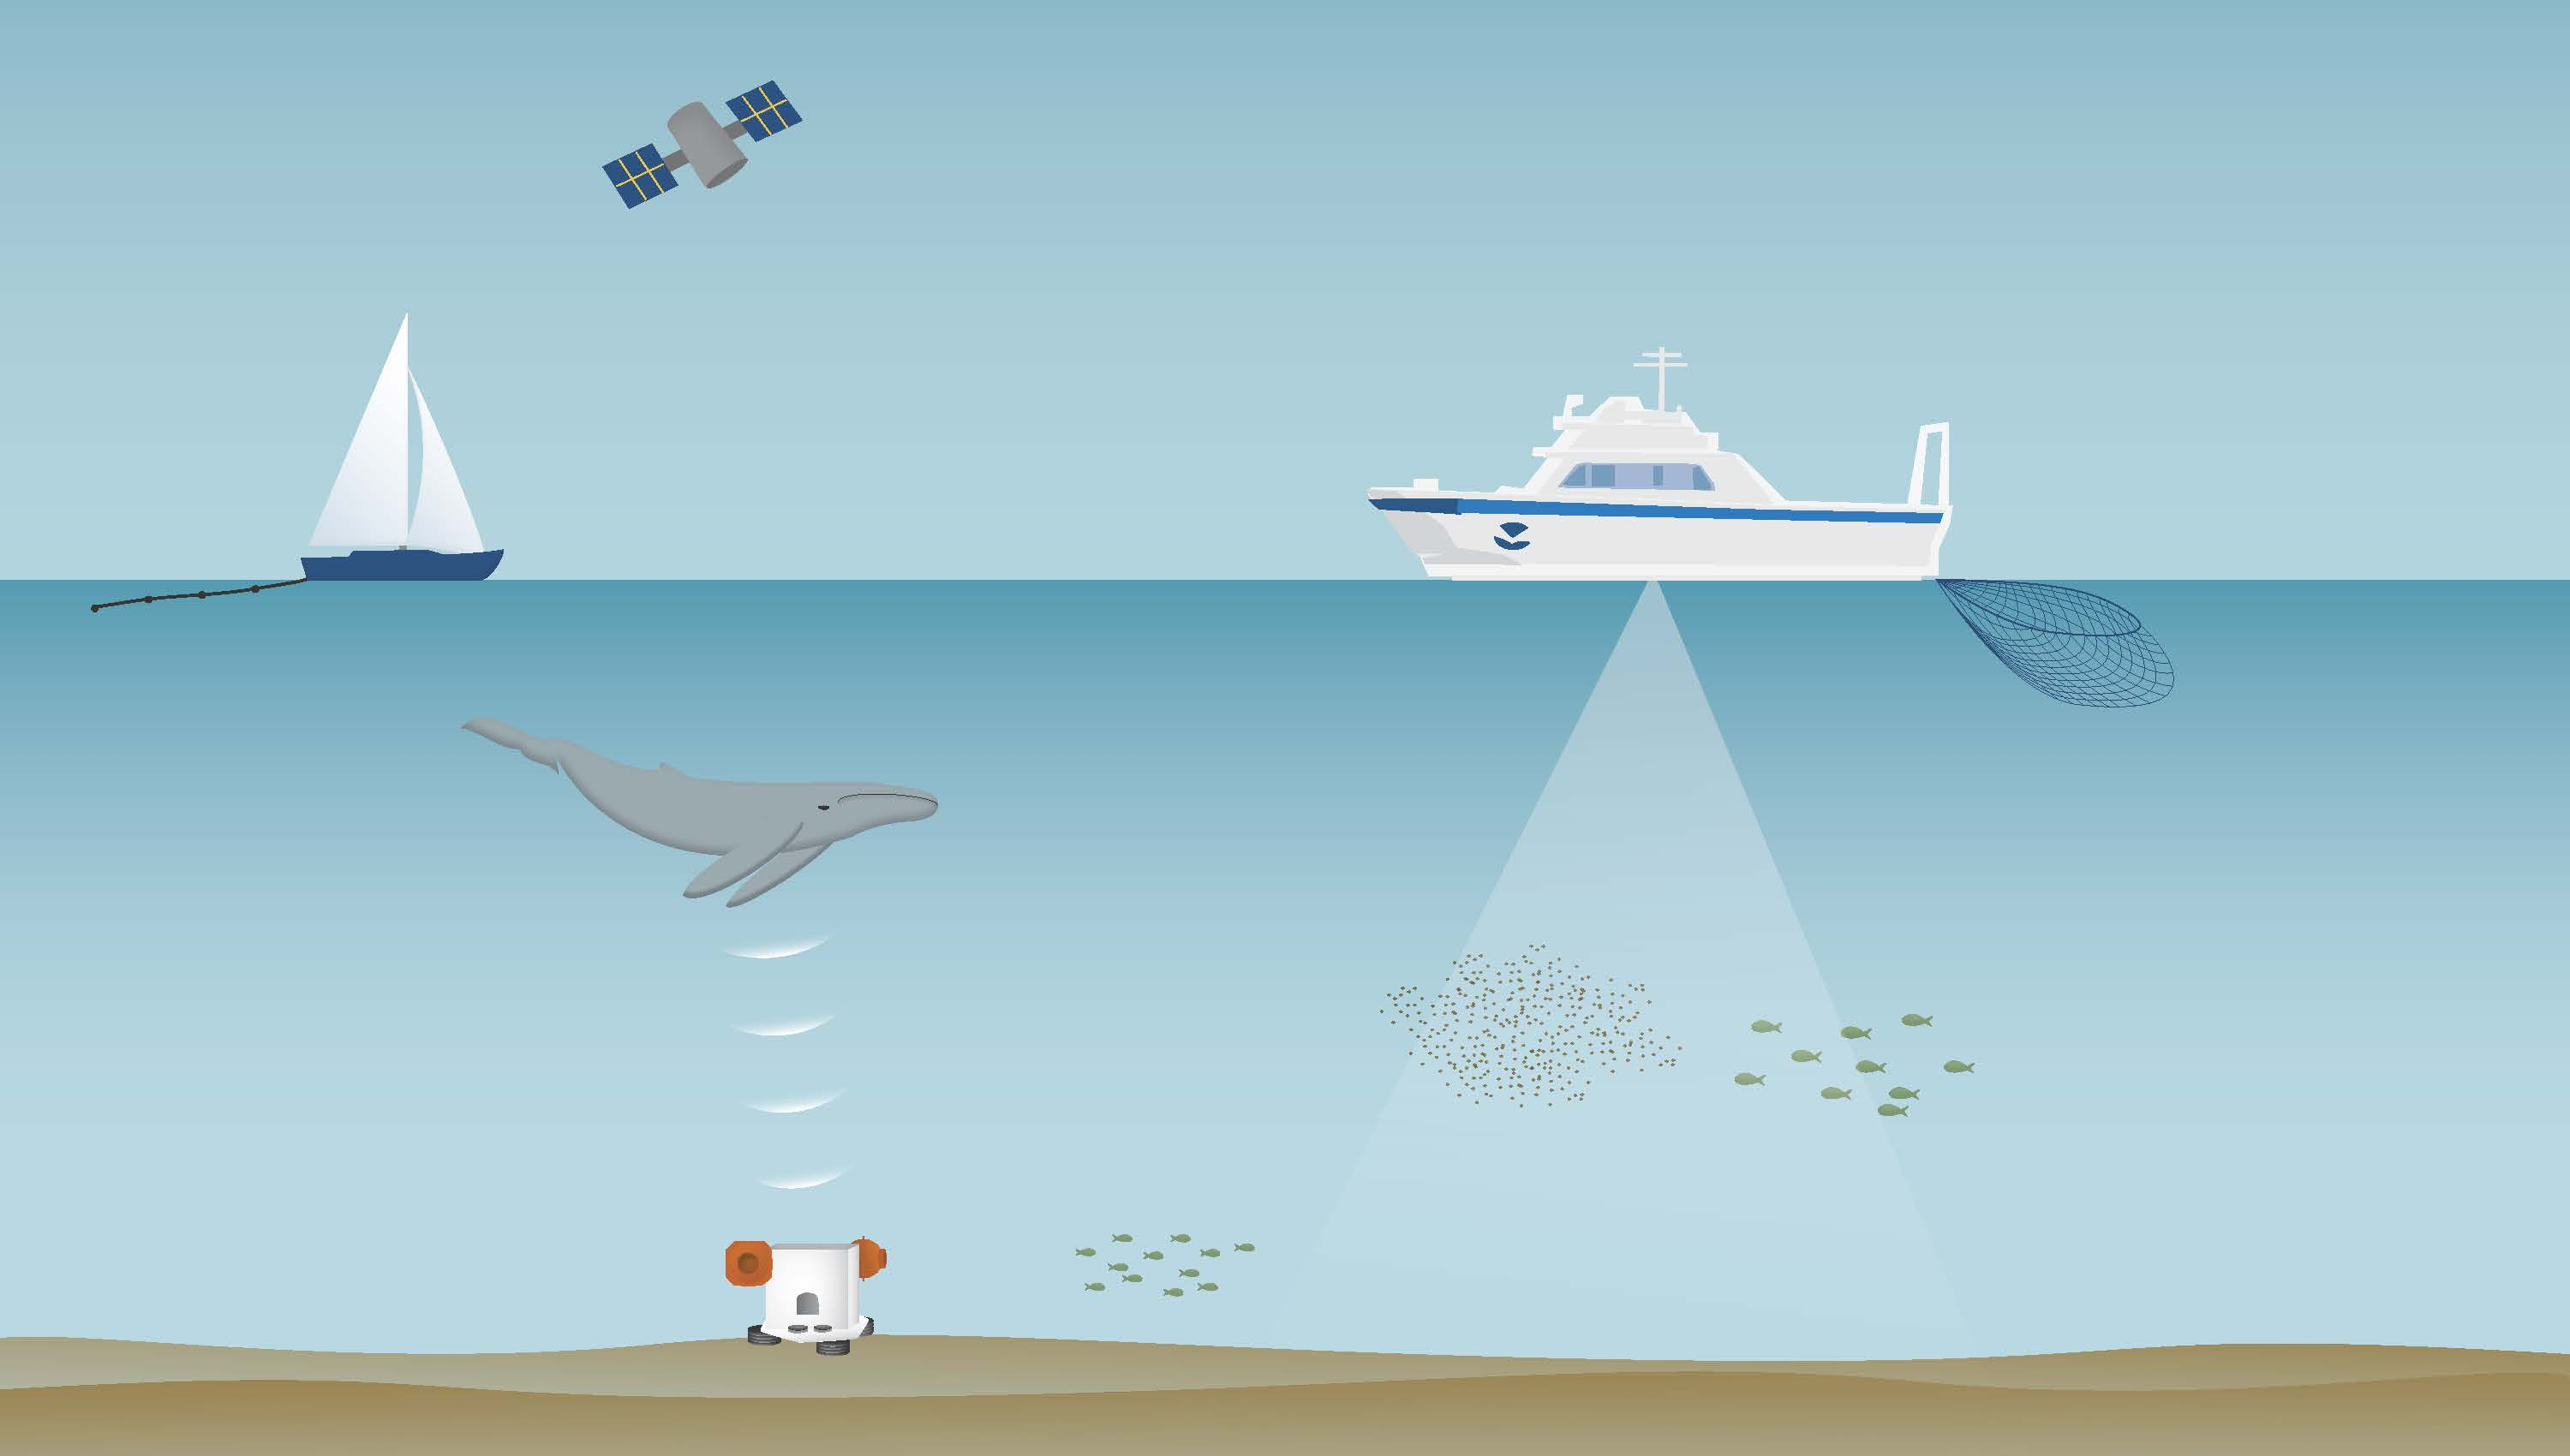 The ADEON data collection network of vessels, satellites, and ocean bottom landers